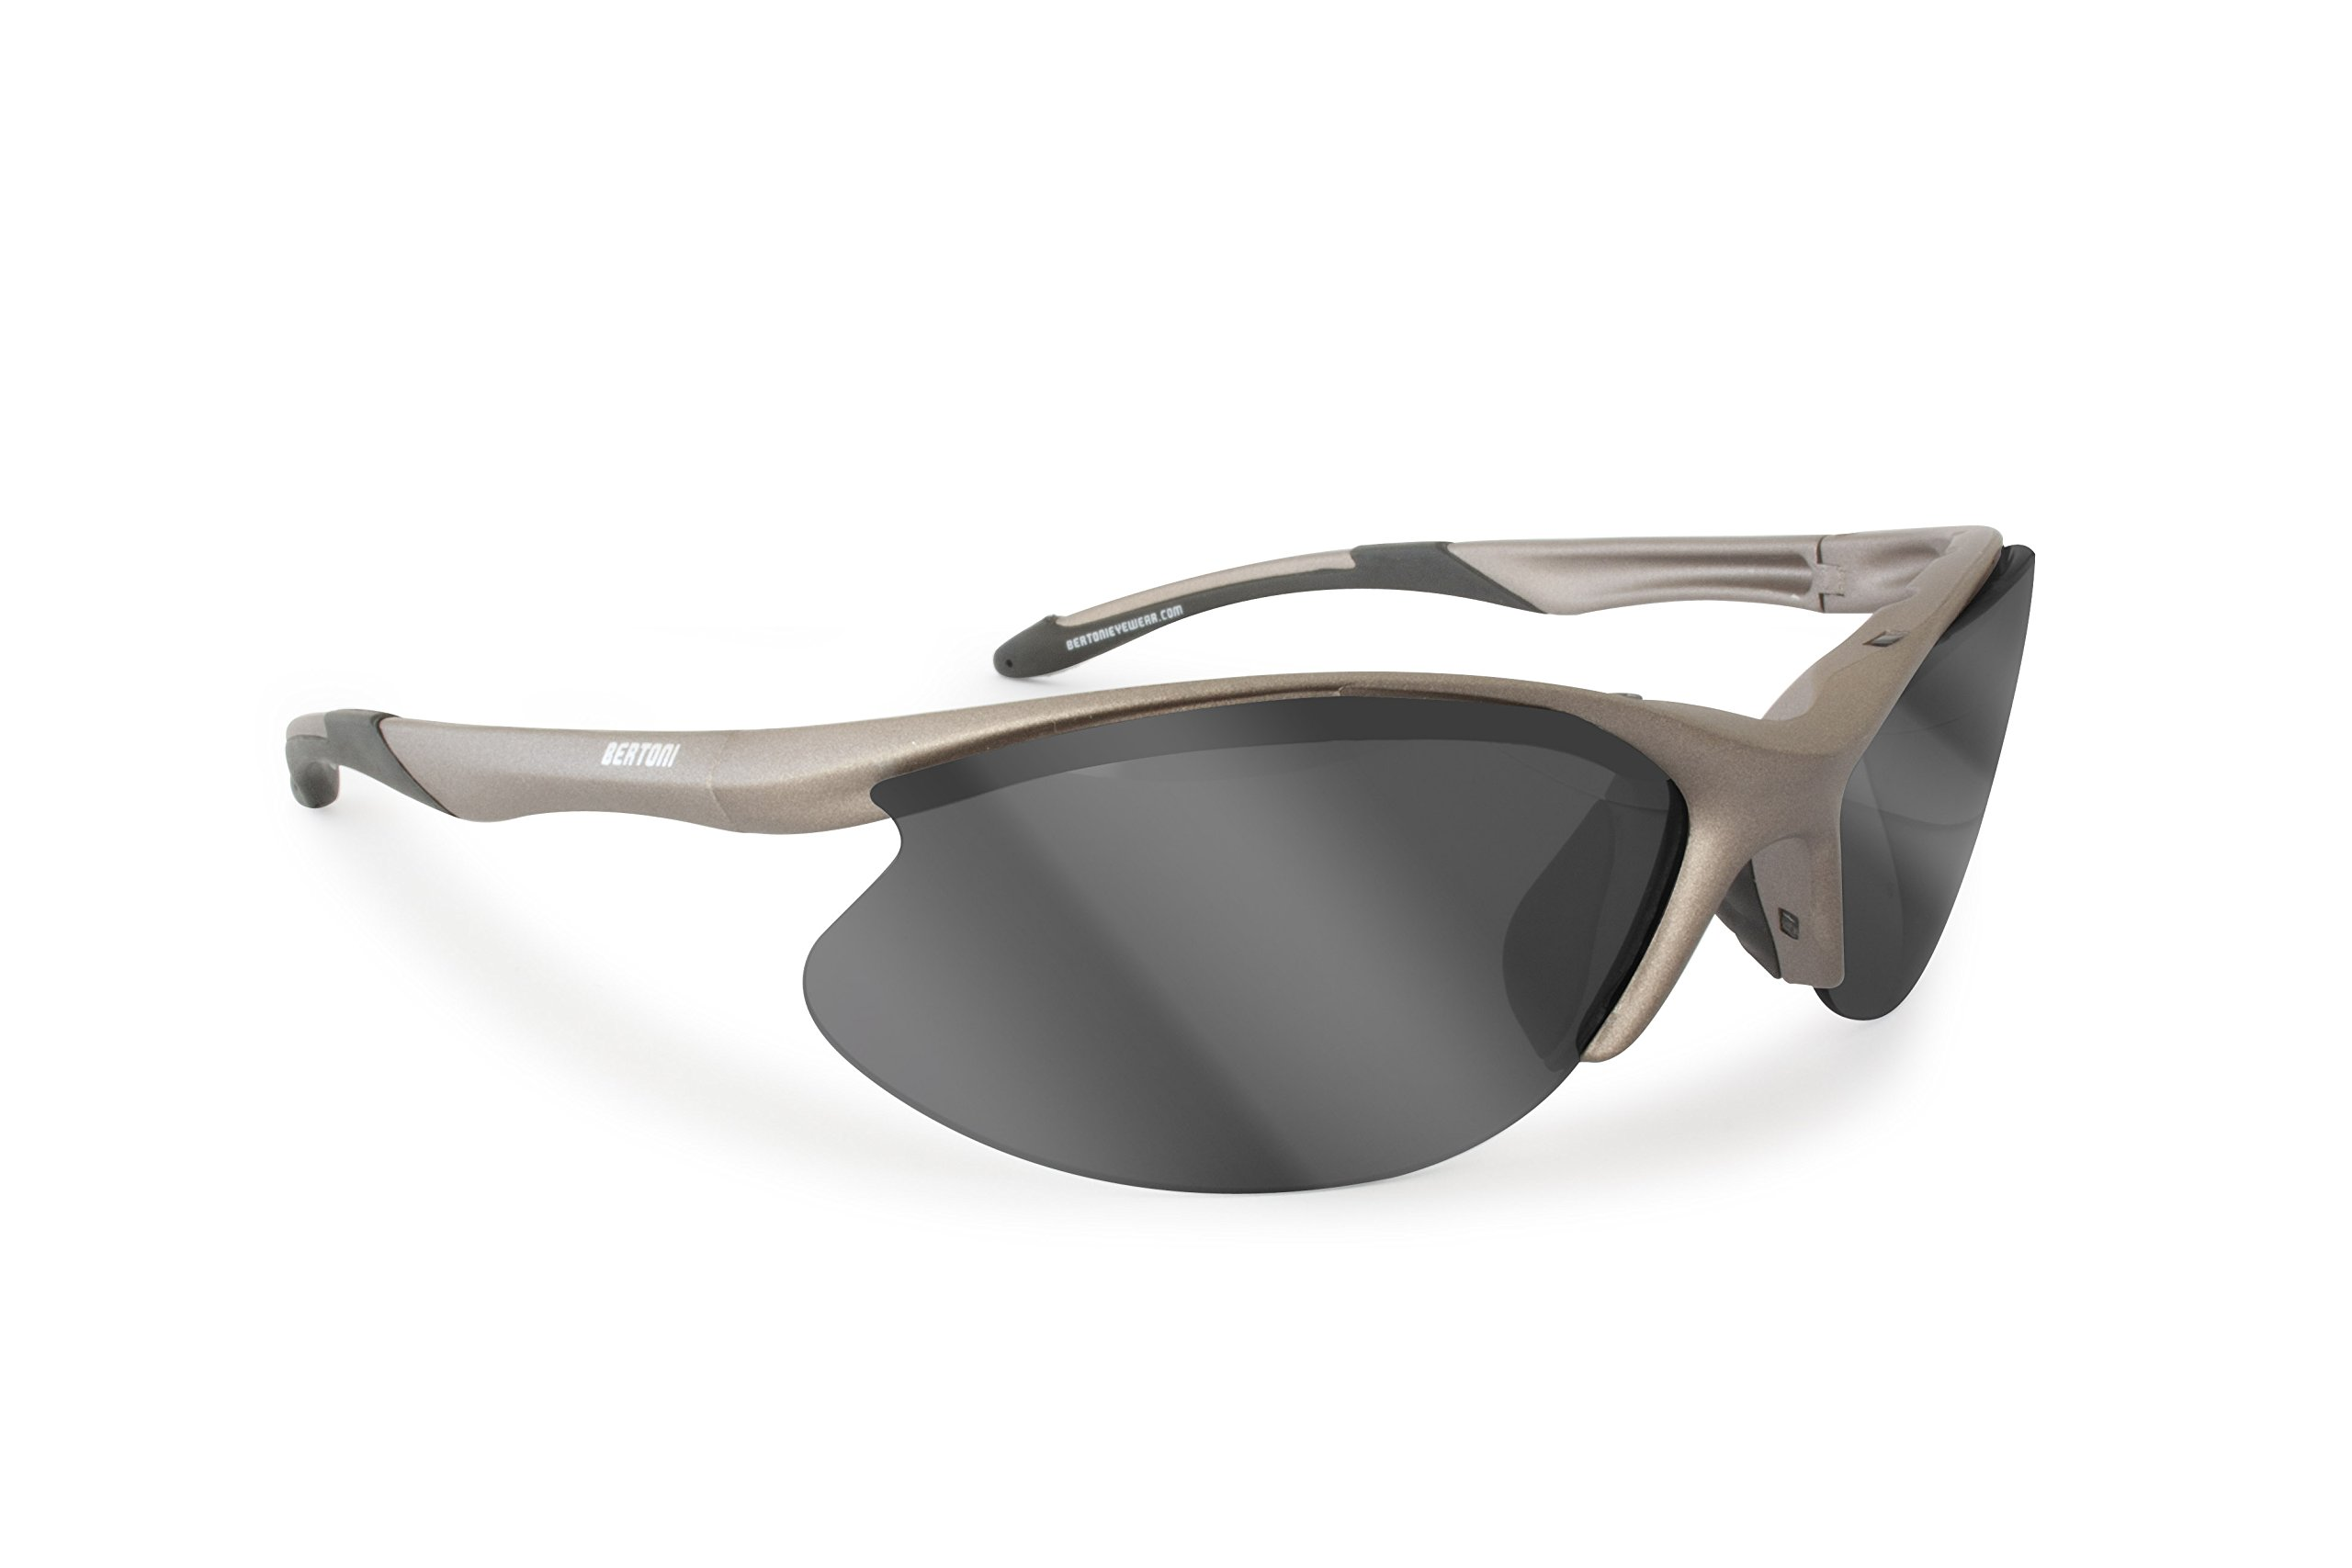 Bertoni Sport Sunglasses for cycling, golfing, running,3 lenses included D326A Italy